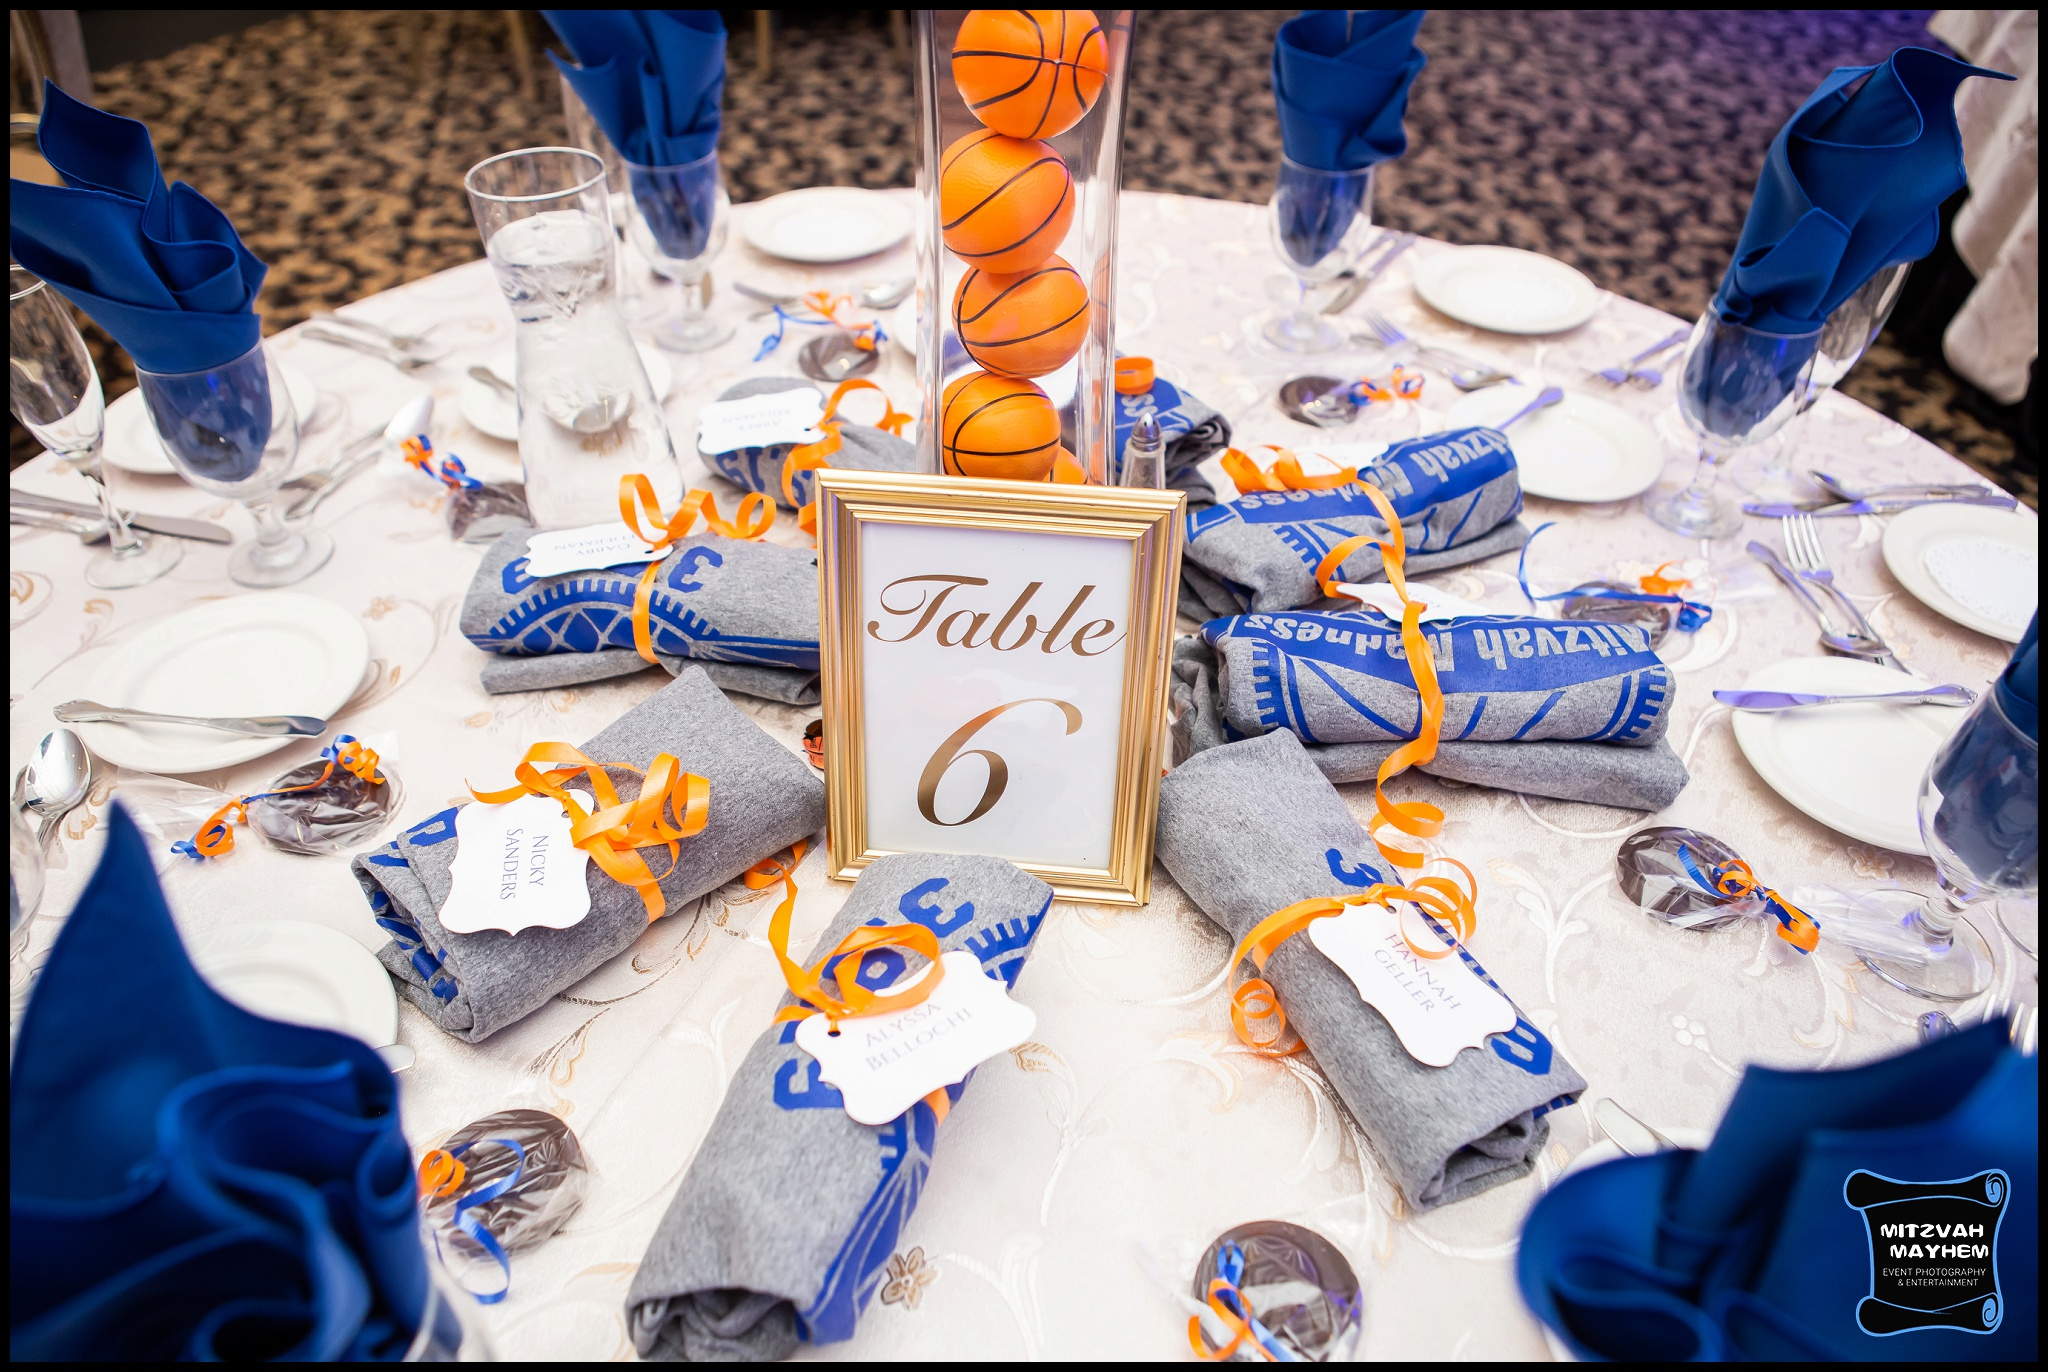 nj-mitzvah-photographer-jacques-caterers-24.JPG